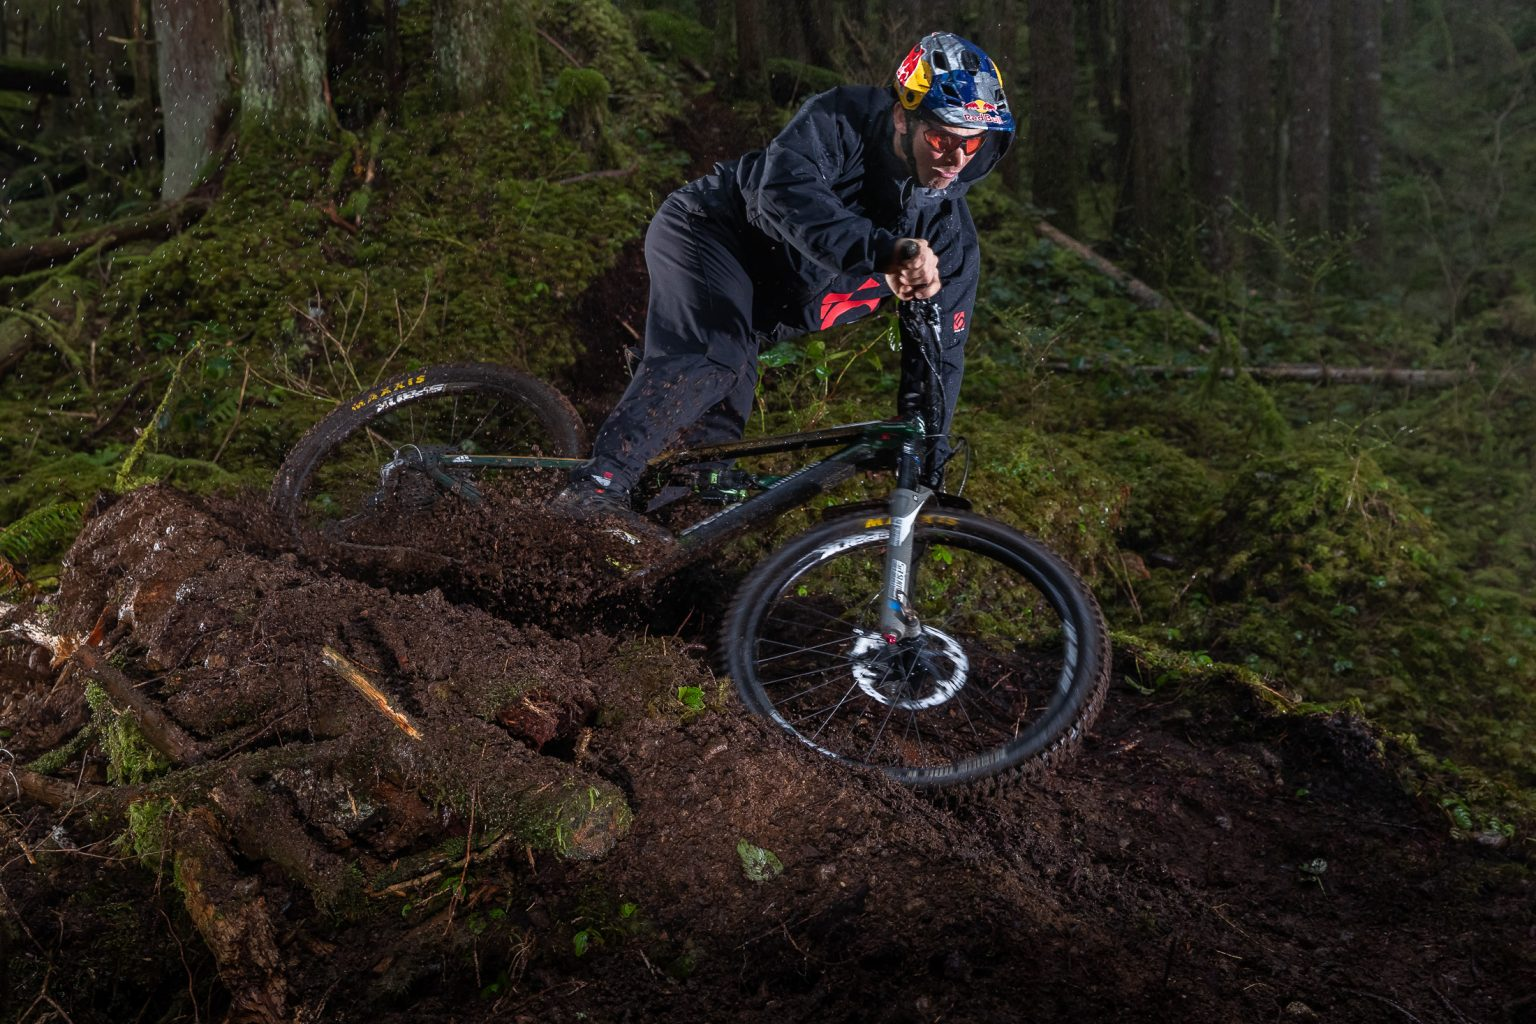 Press Release: Five Ten introduces the new Trailcross GTX - The ultimate wet weather riding shoe